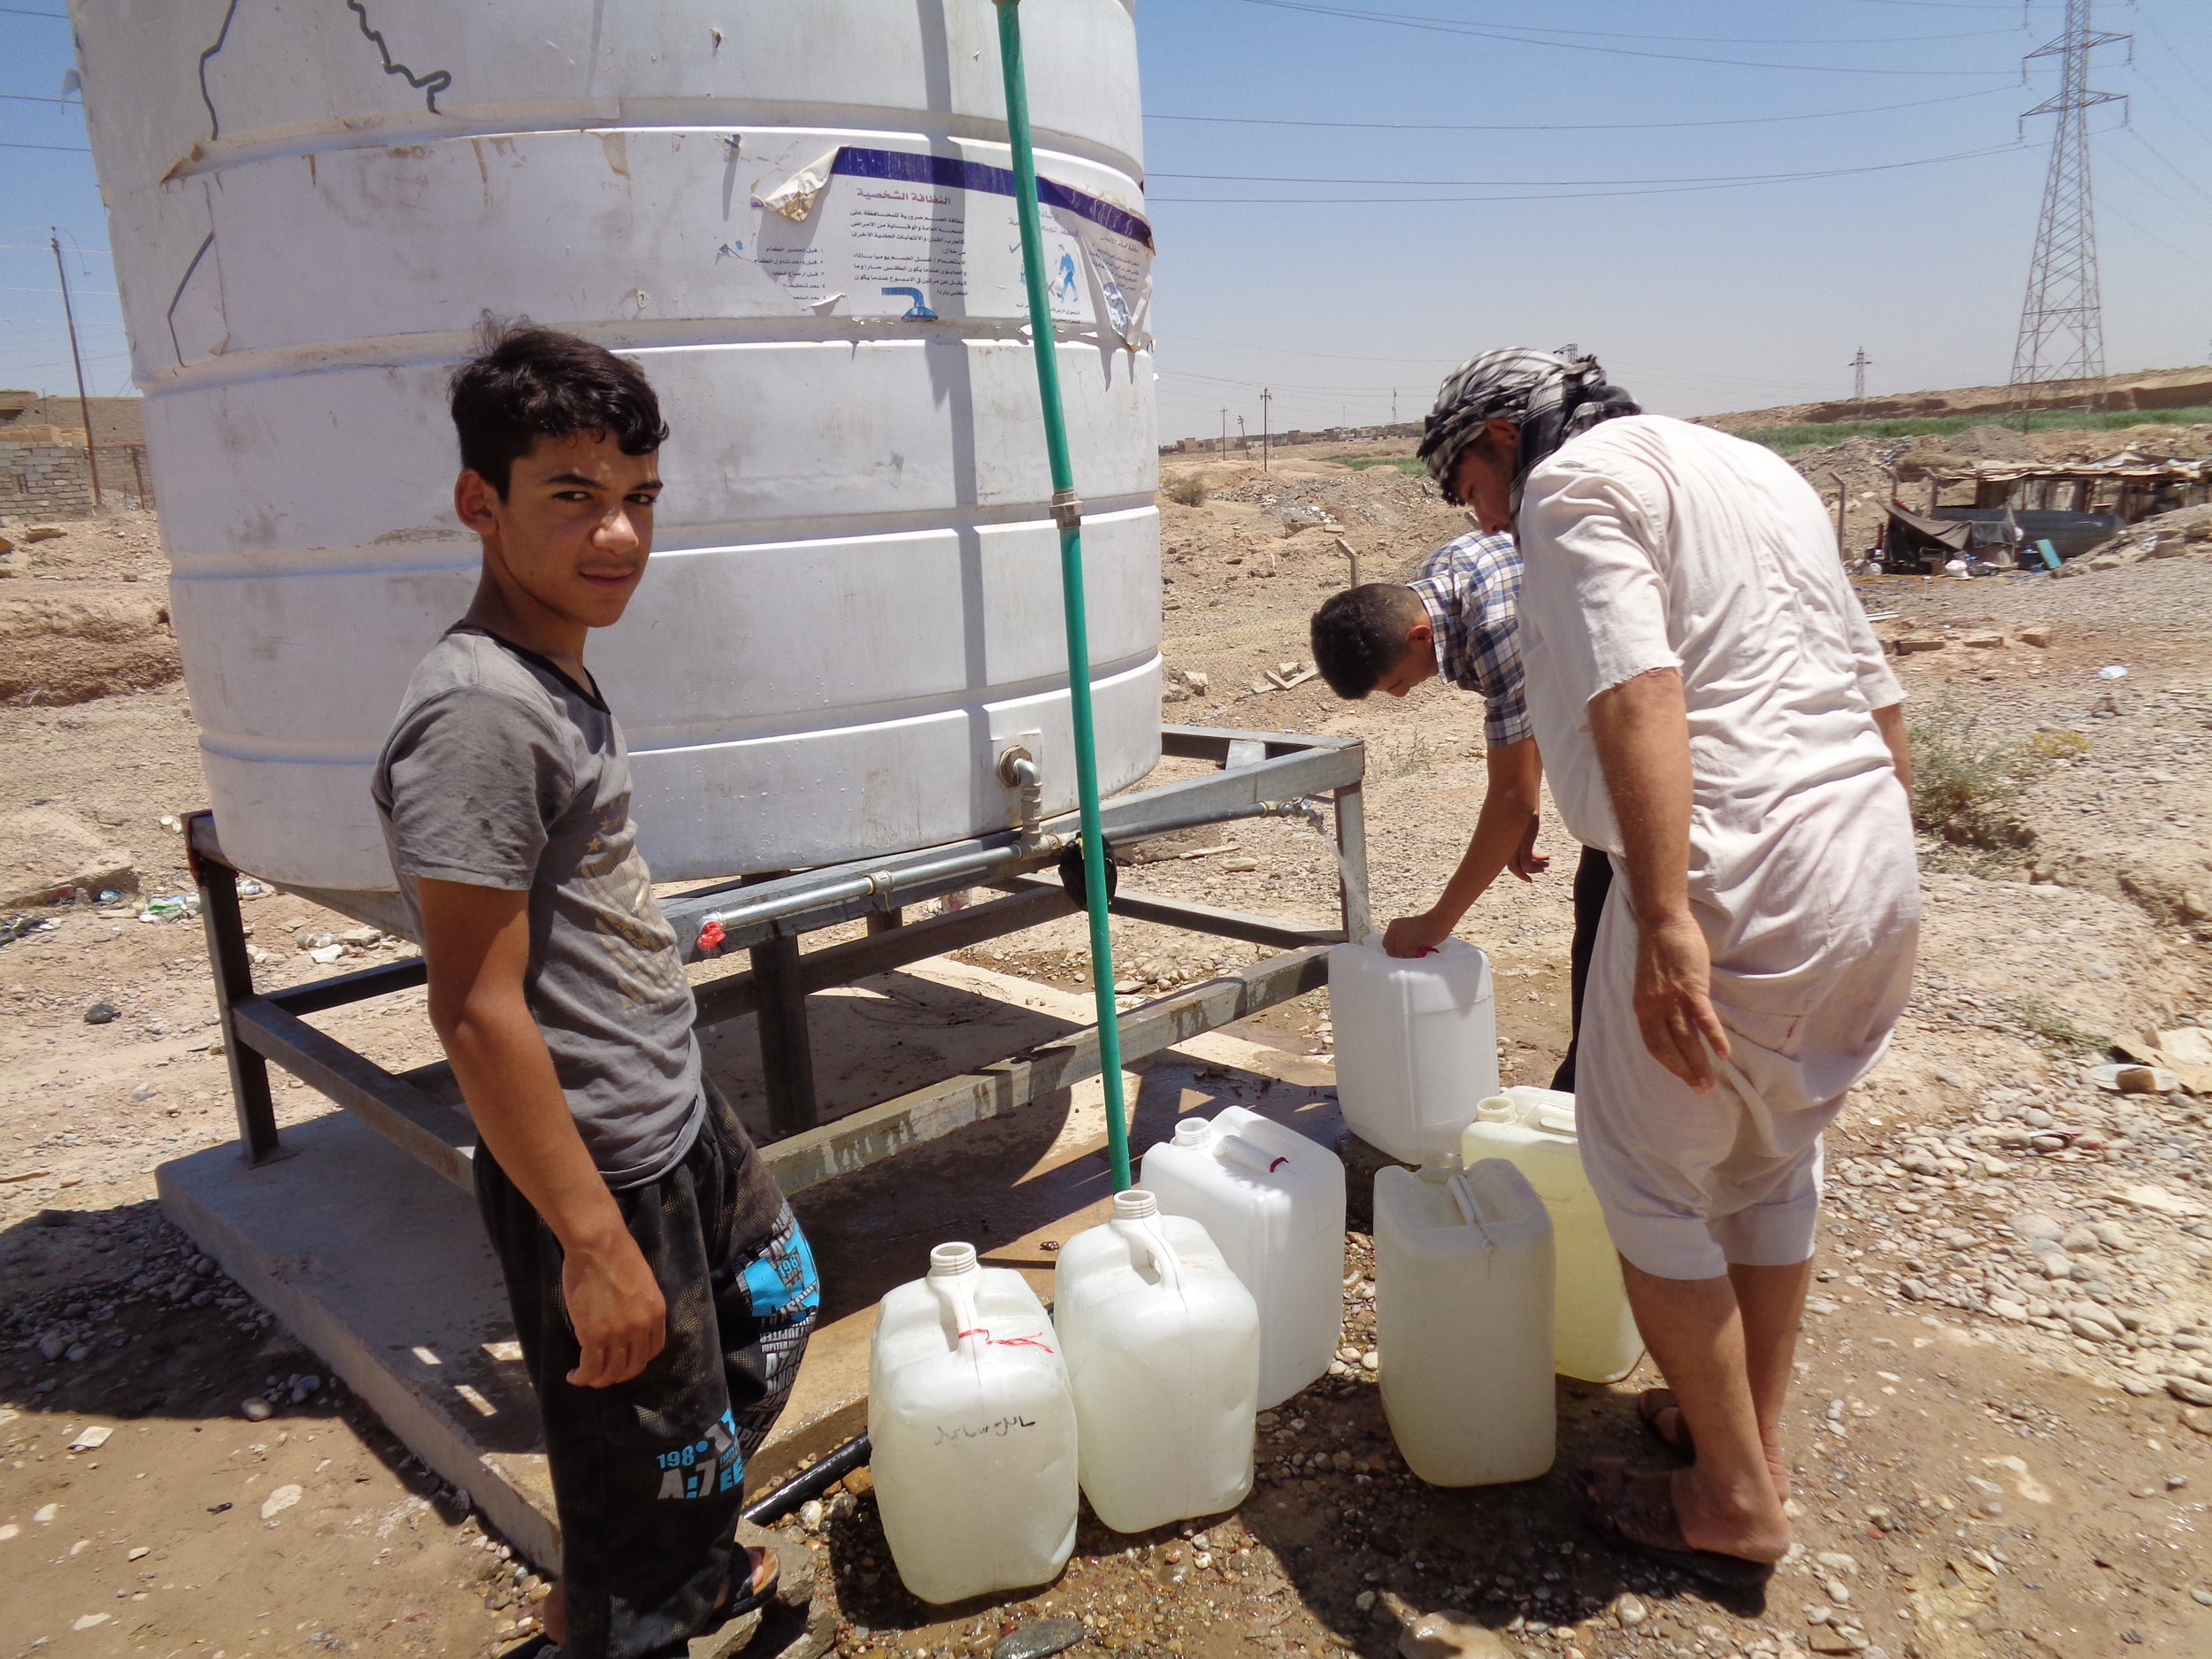 Almost everyone says that the water supply in the camp is inadequate and of poor quality. Water comes from tanks that were installed by international organizations, but they are not filled as regularly as needed.